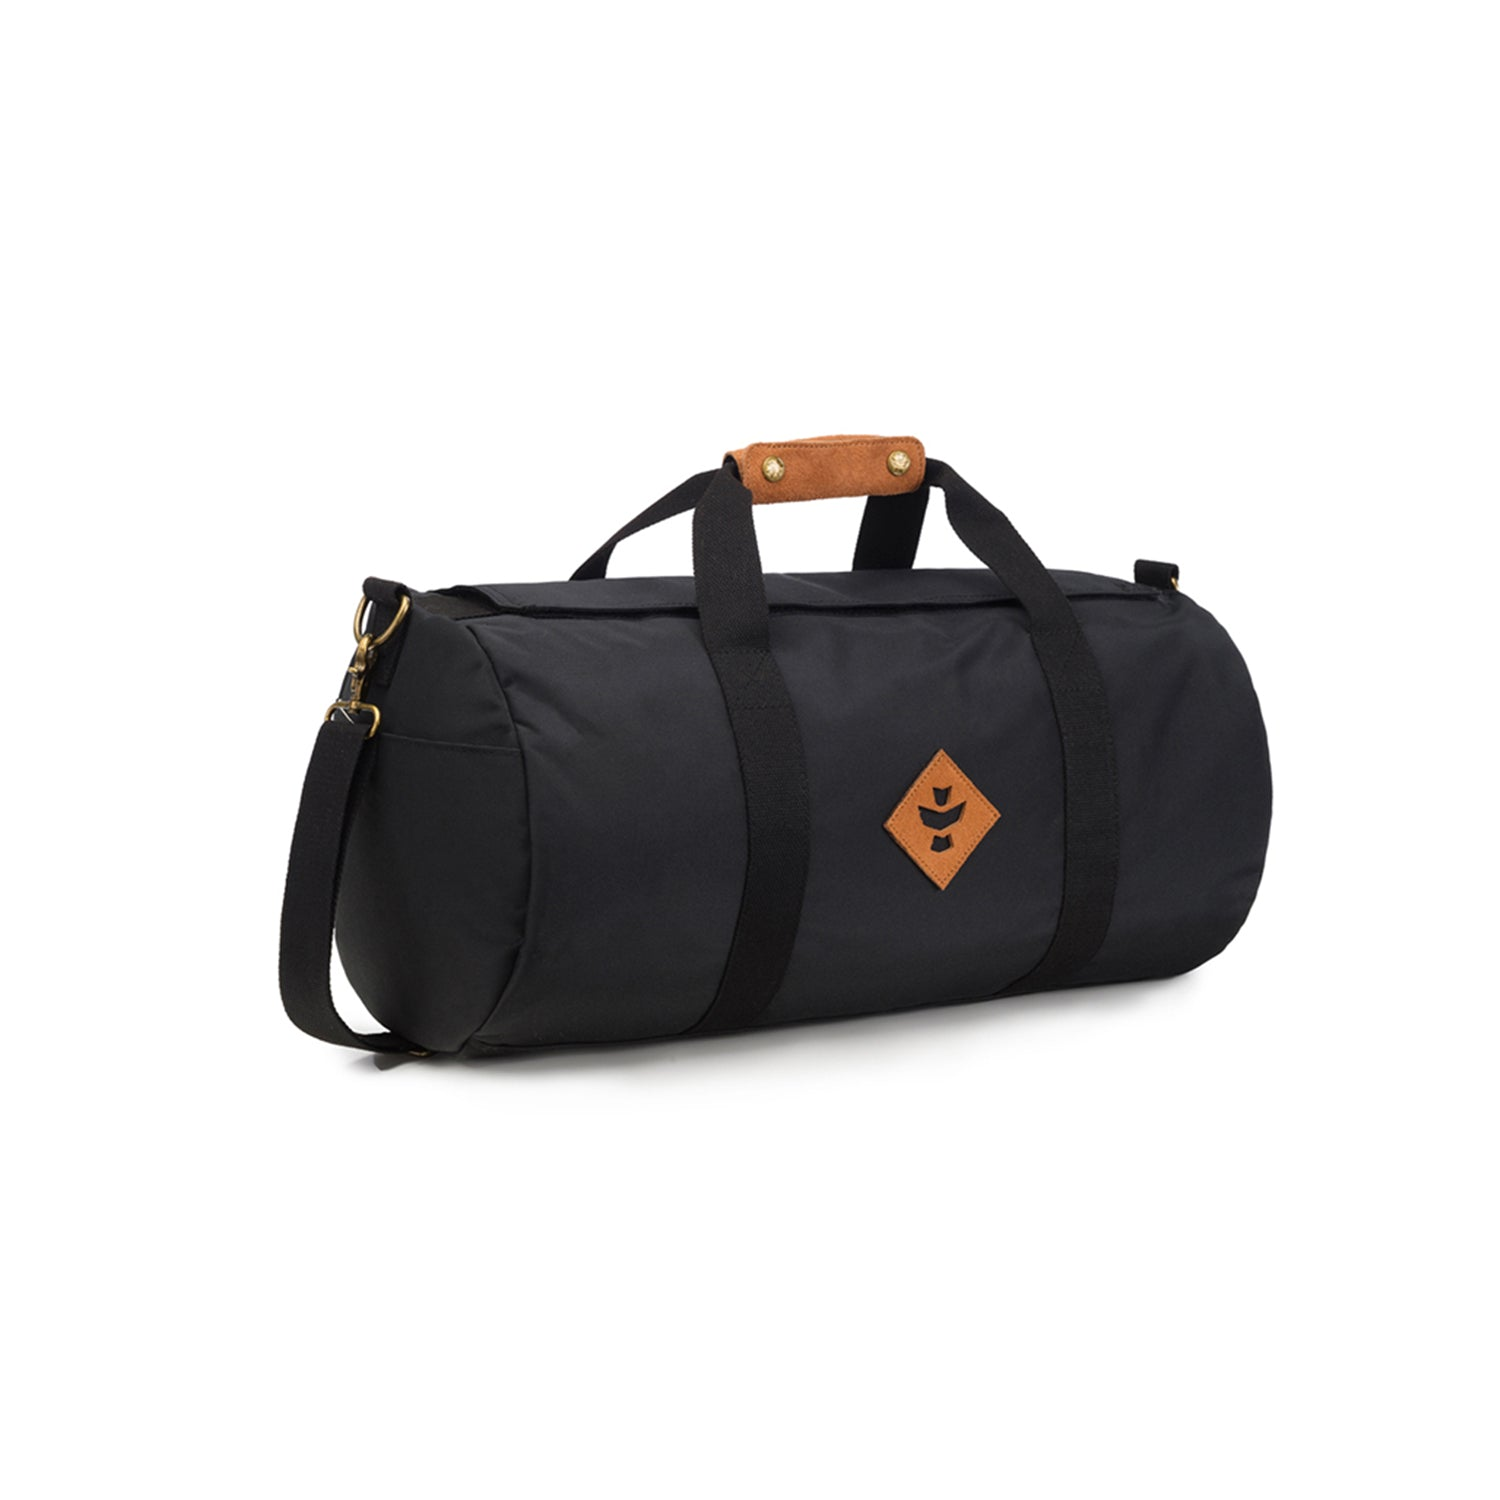 Black Nylon Smell Proof Water Resistant Small Duffle Bag